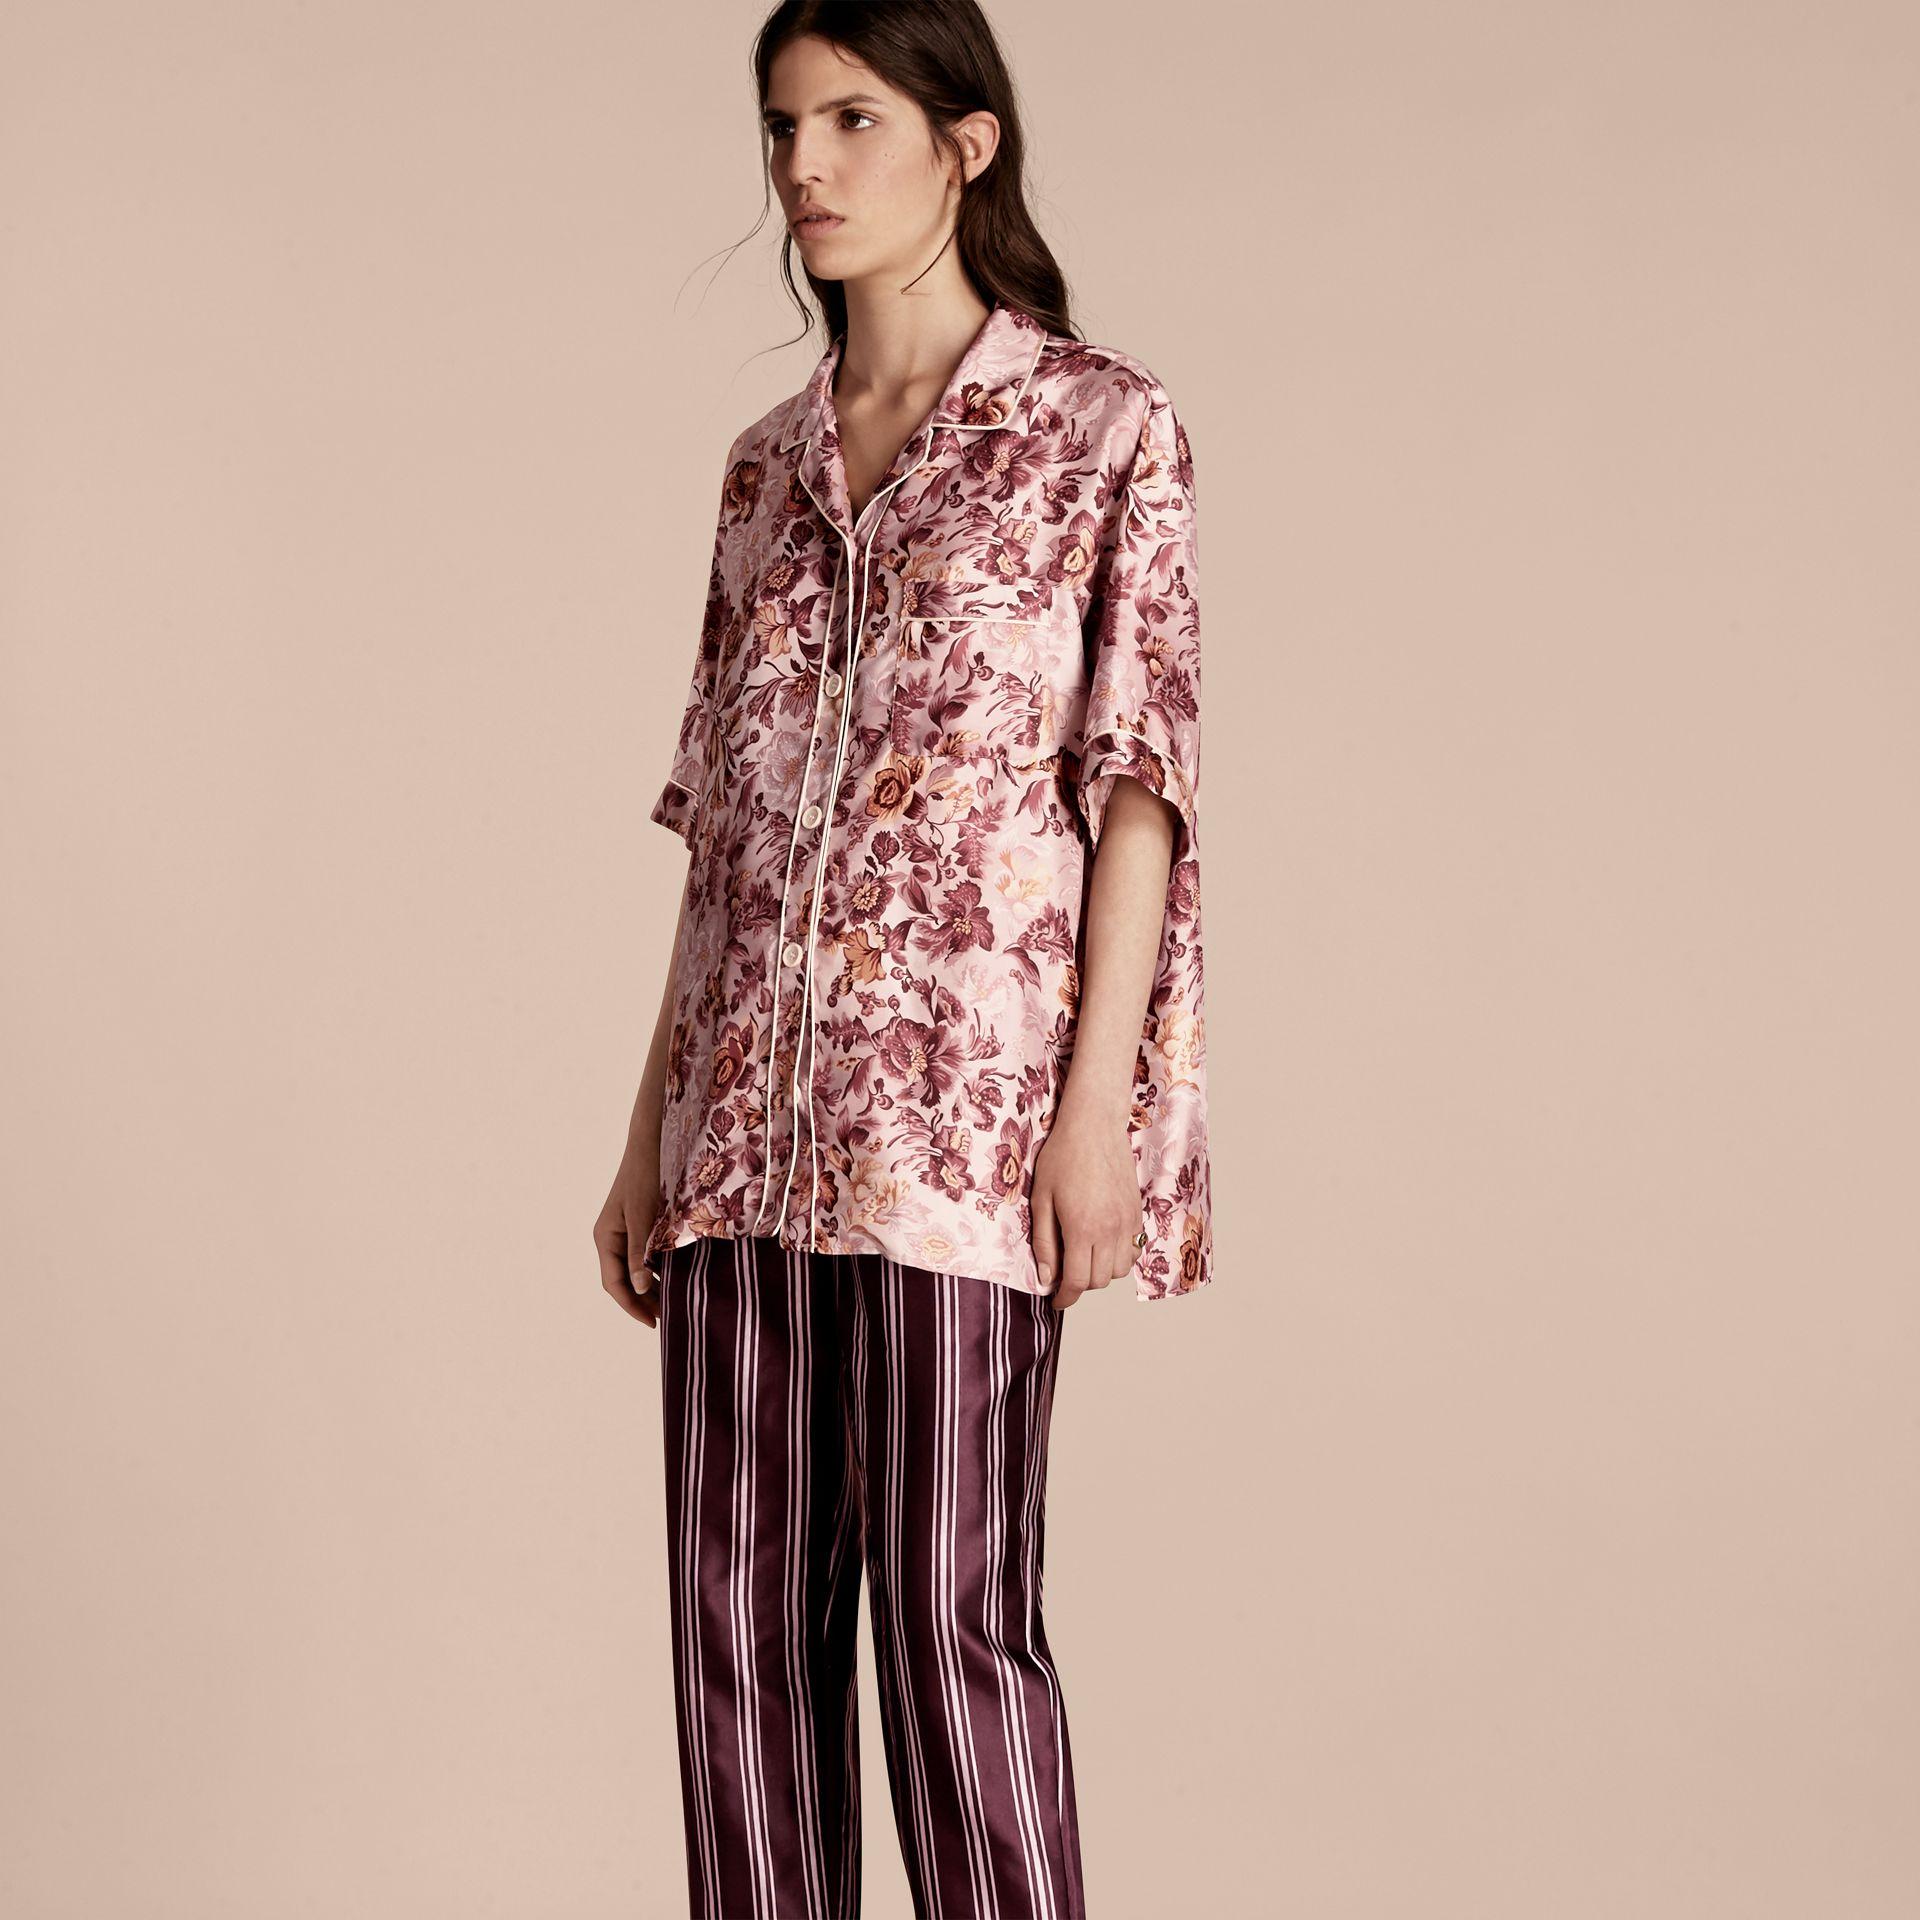 Pink heather Short-sleeved Floral Print Silk Pyjama-style Shirt Pink Heather - gallery image 1